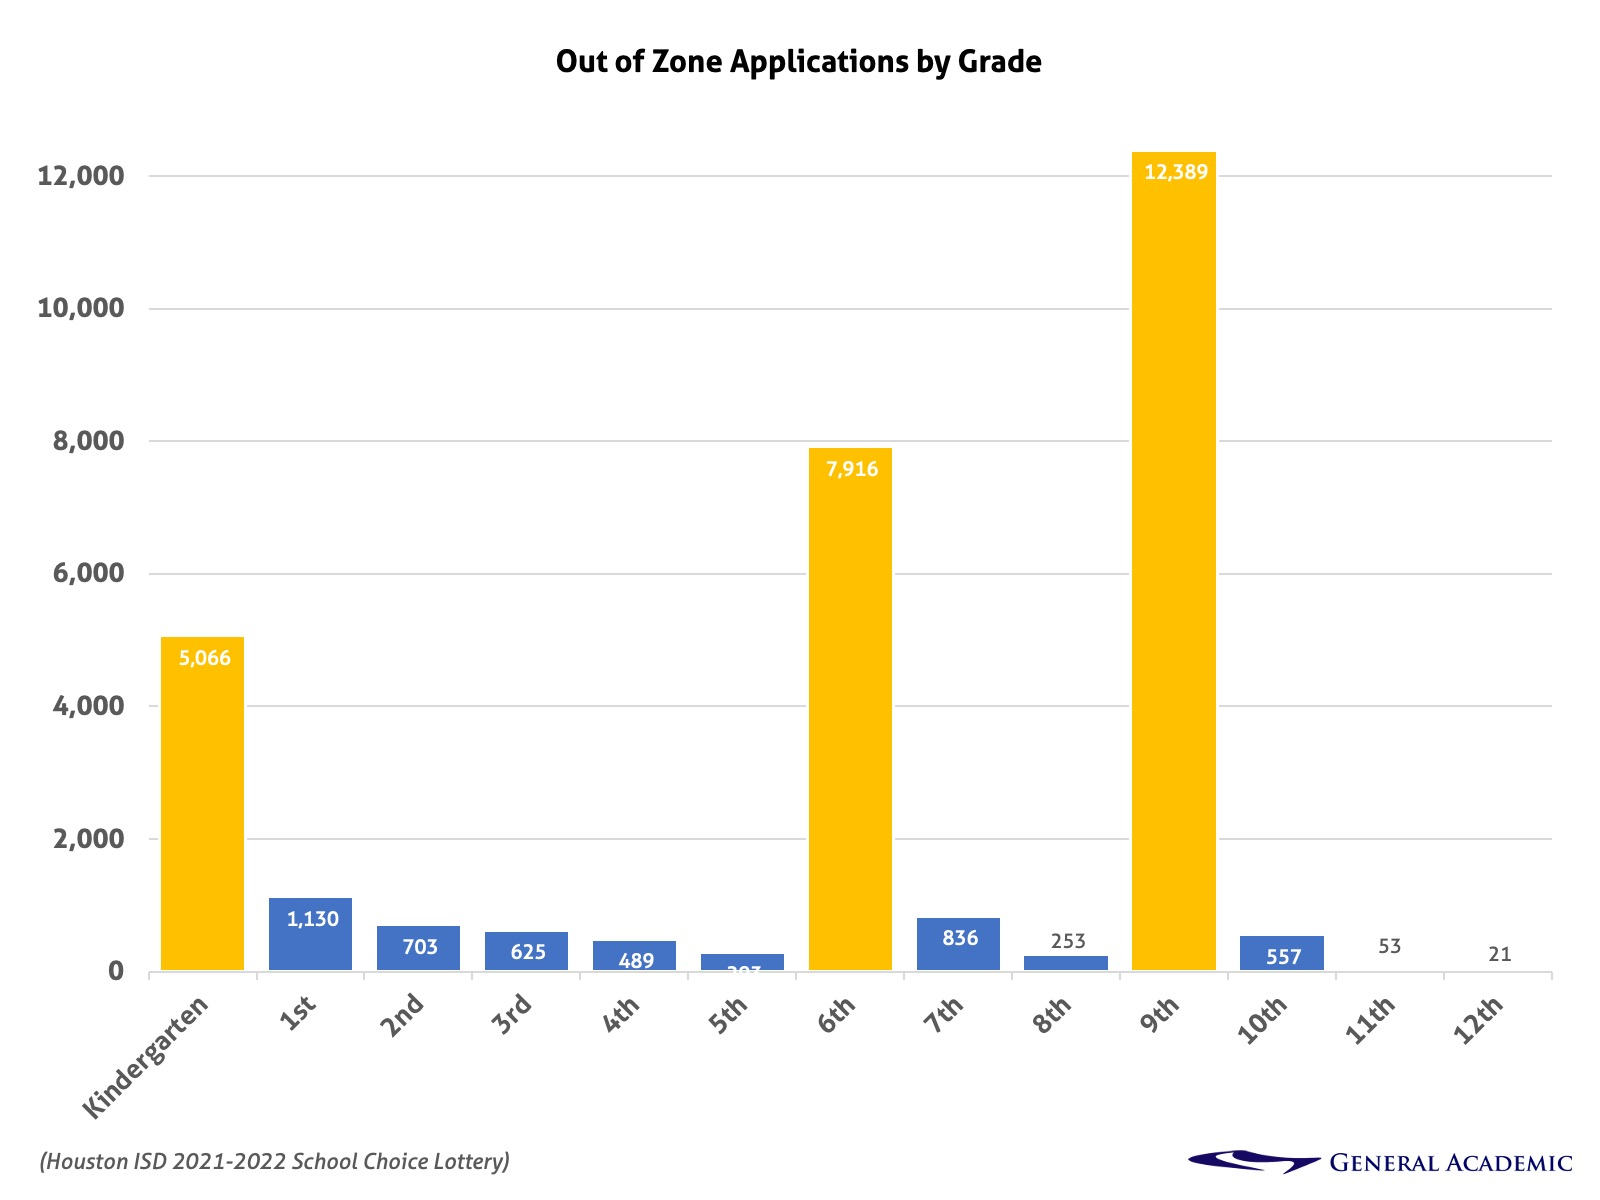 Houston ISD Magnet Lottery applications by grade for 2021-2022.